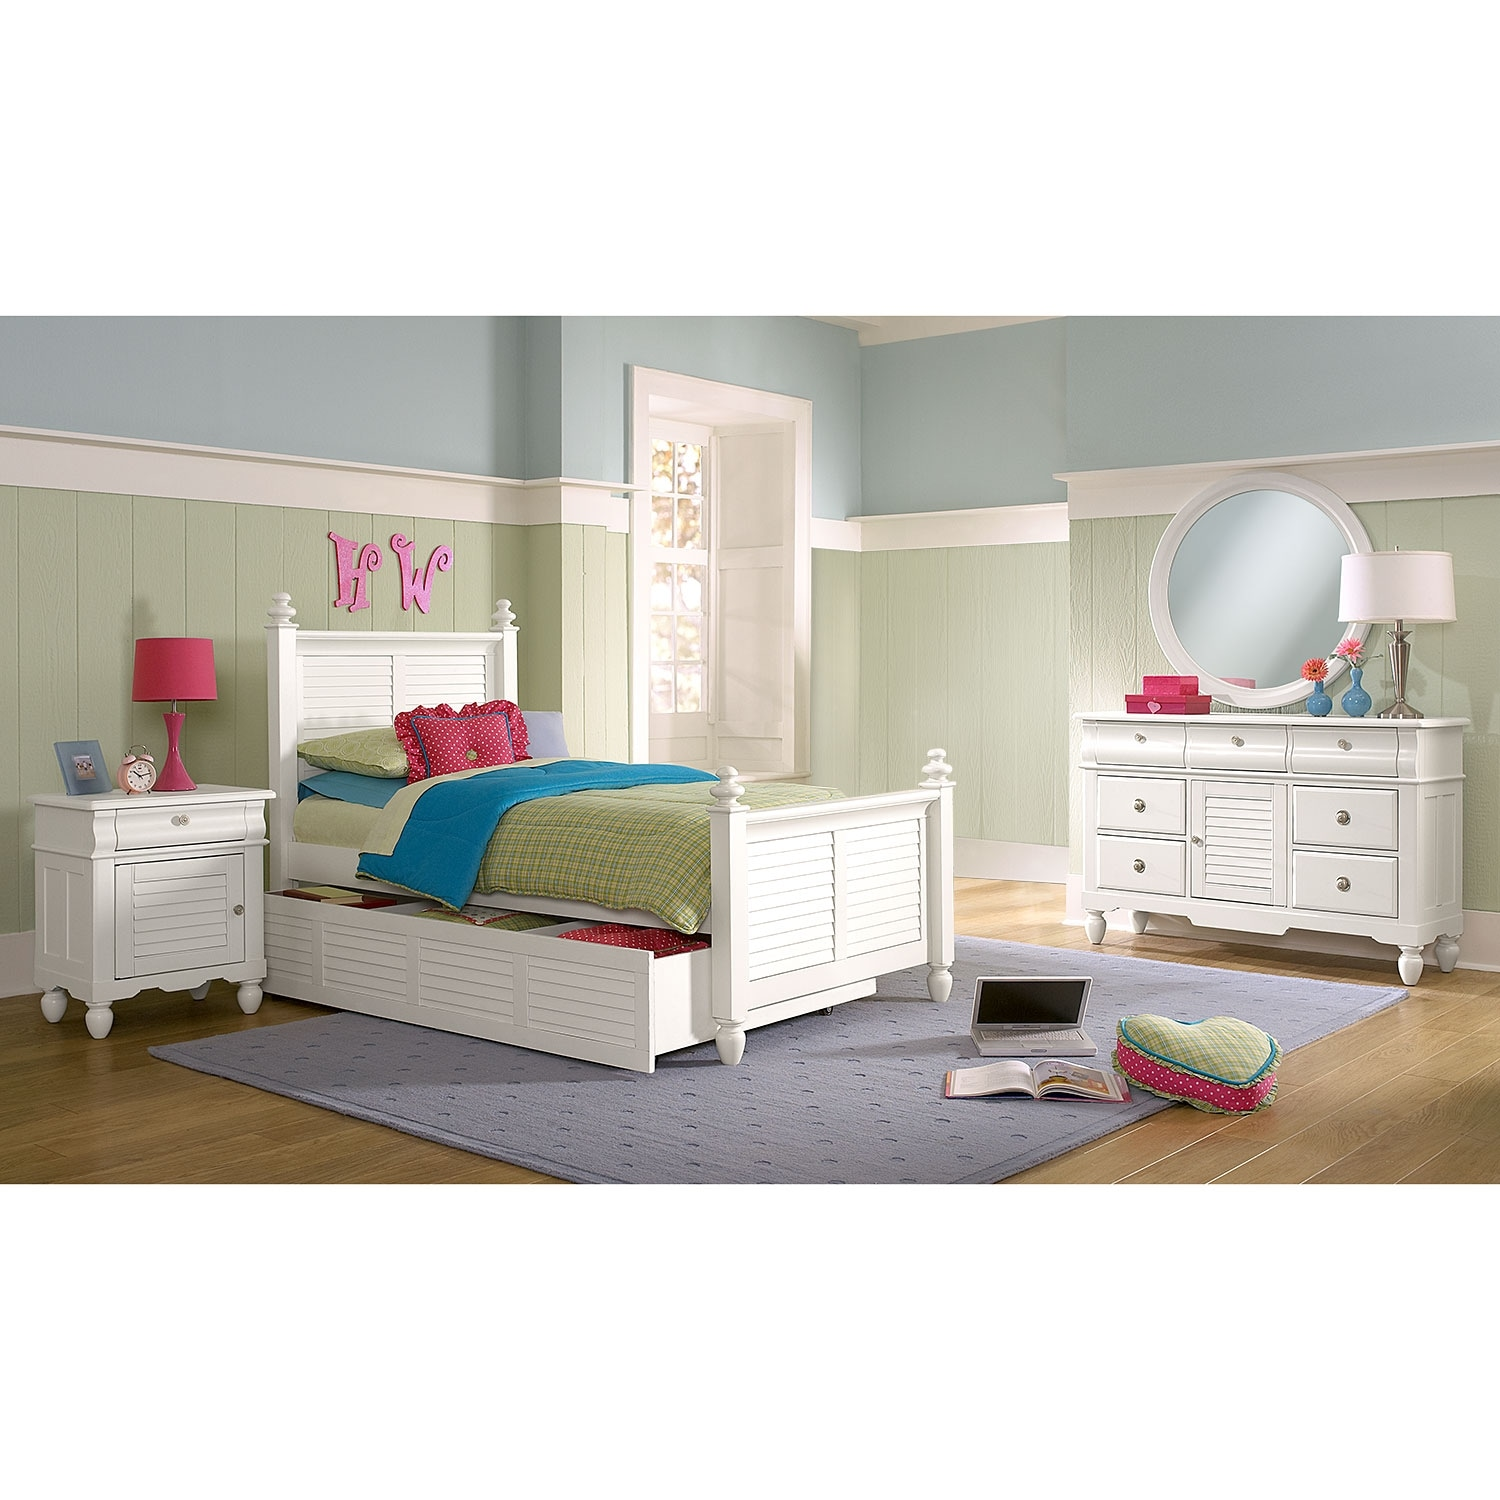 [Seaside White 7 Pc. Full Bedroom with Trundle]